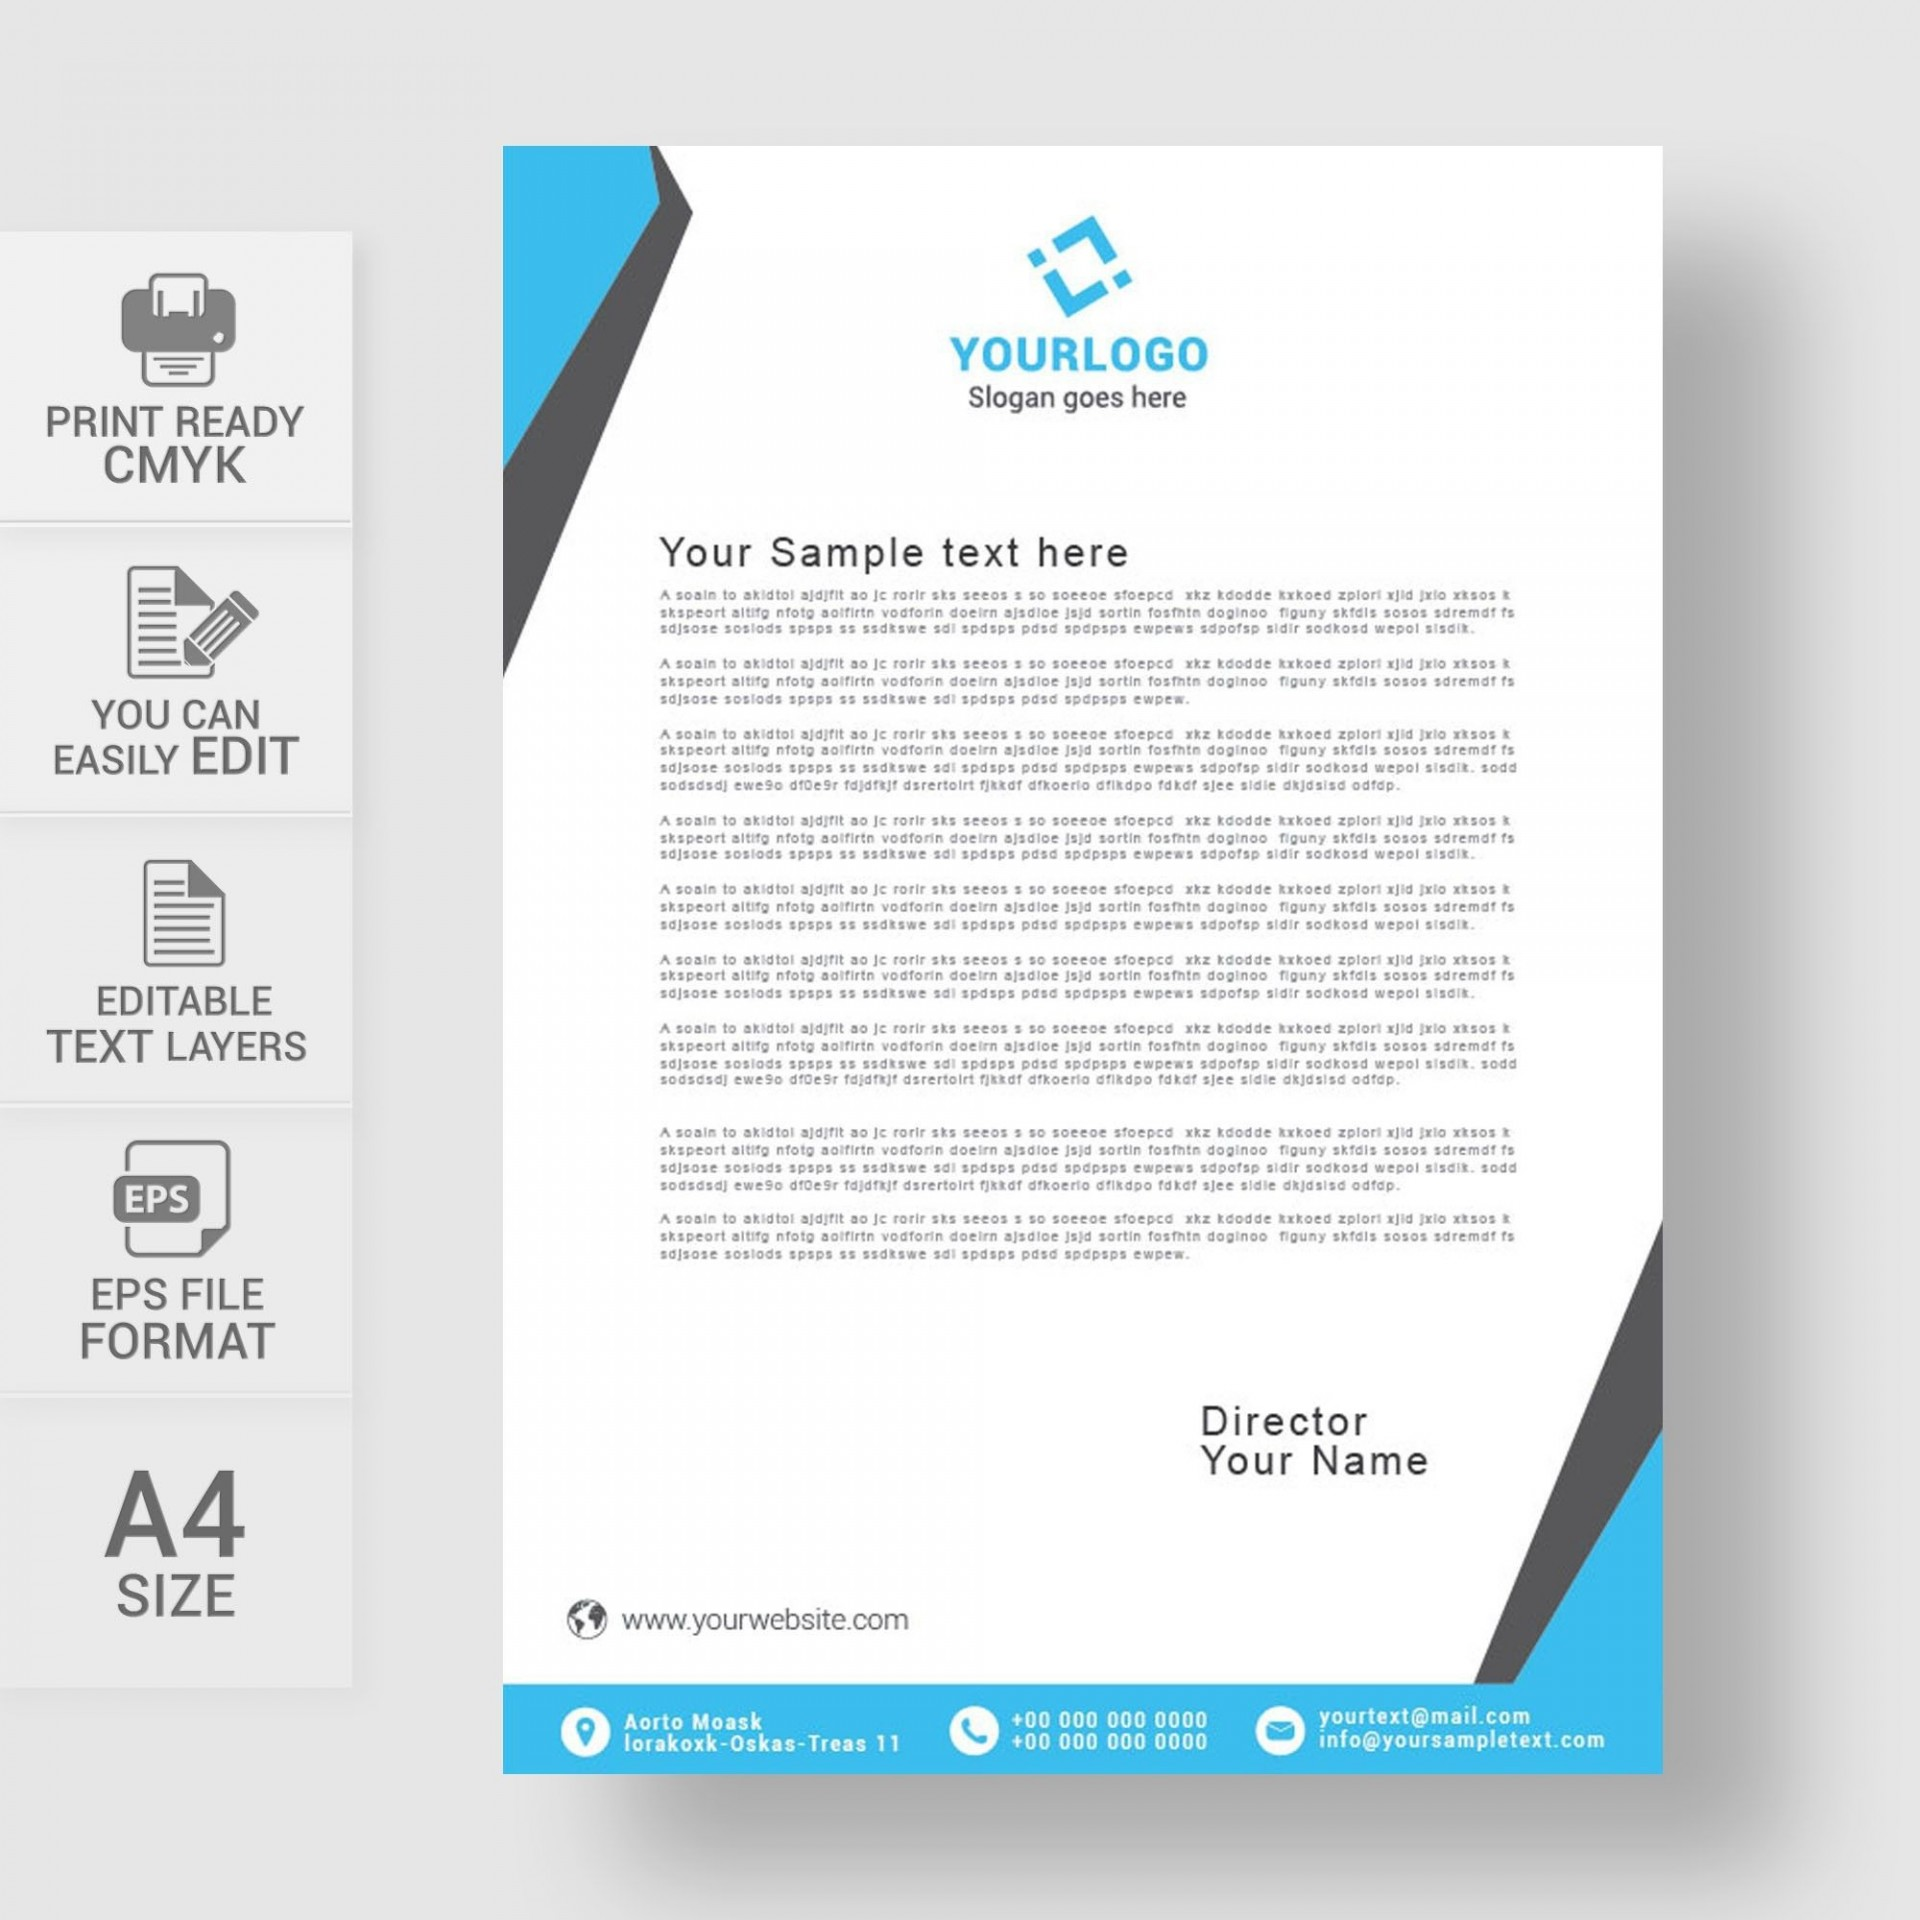 002 Remarkable Company Letterhead Template Word High Def  Busines 2007 Free Download1920